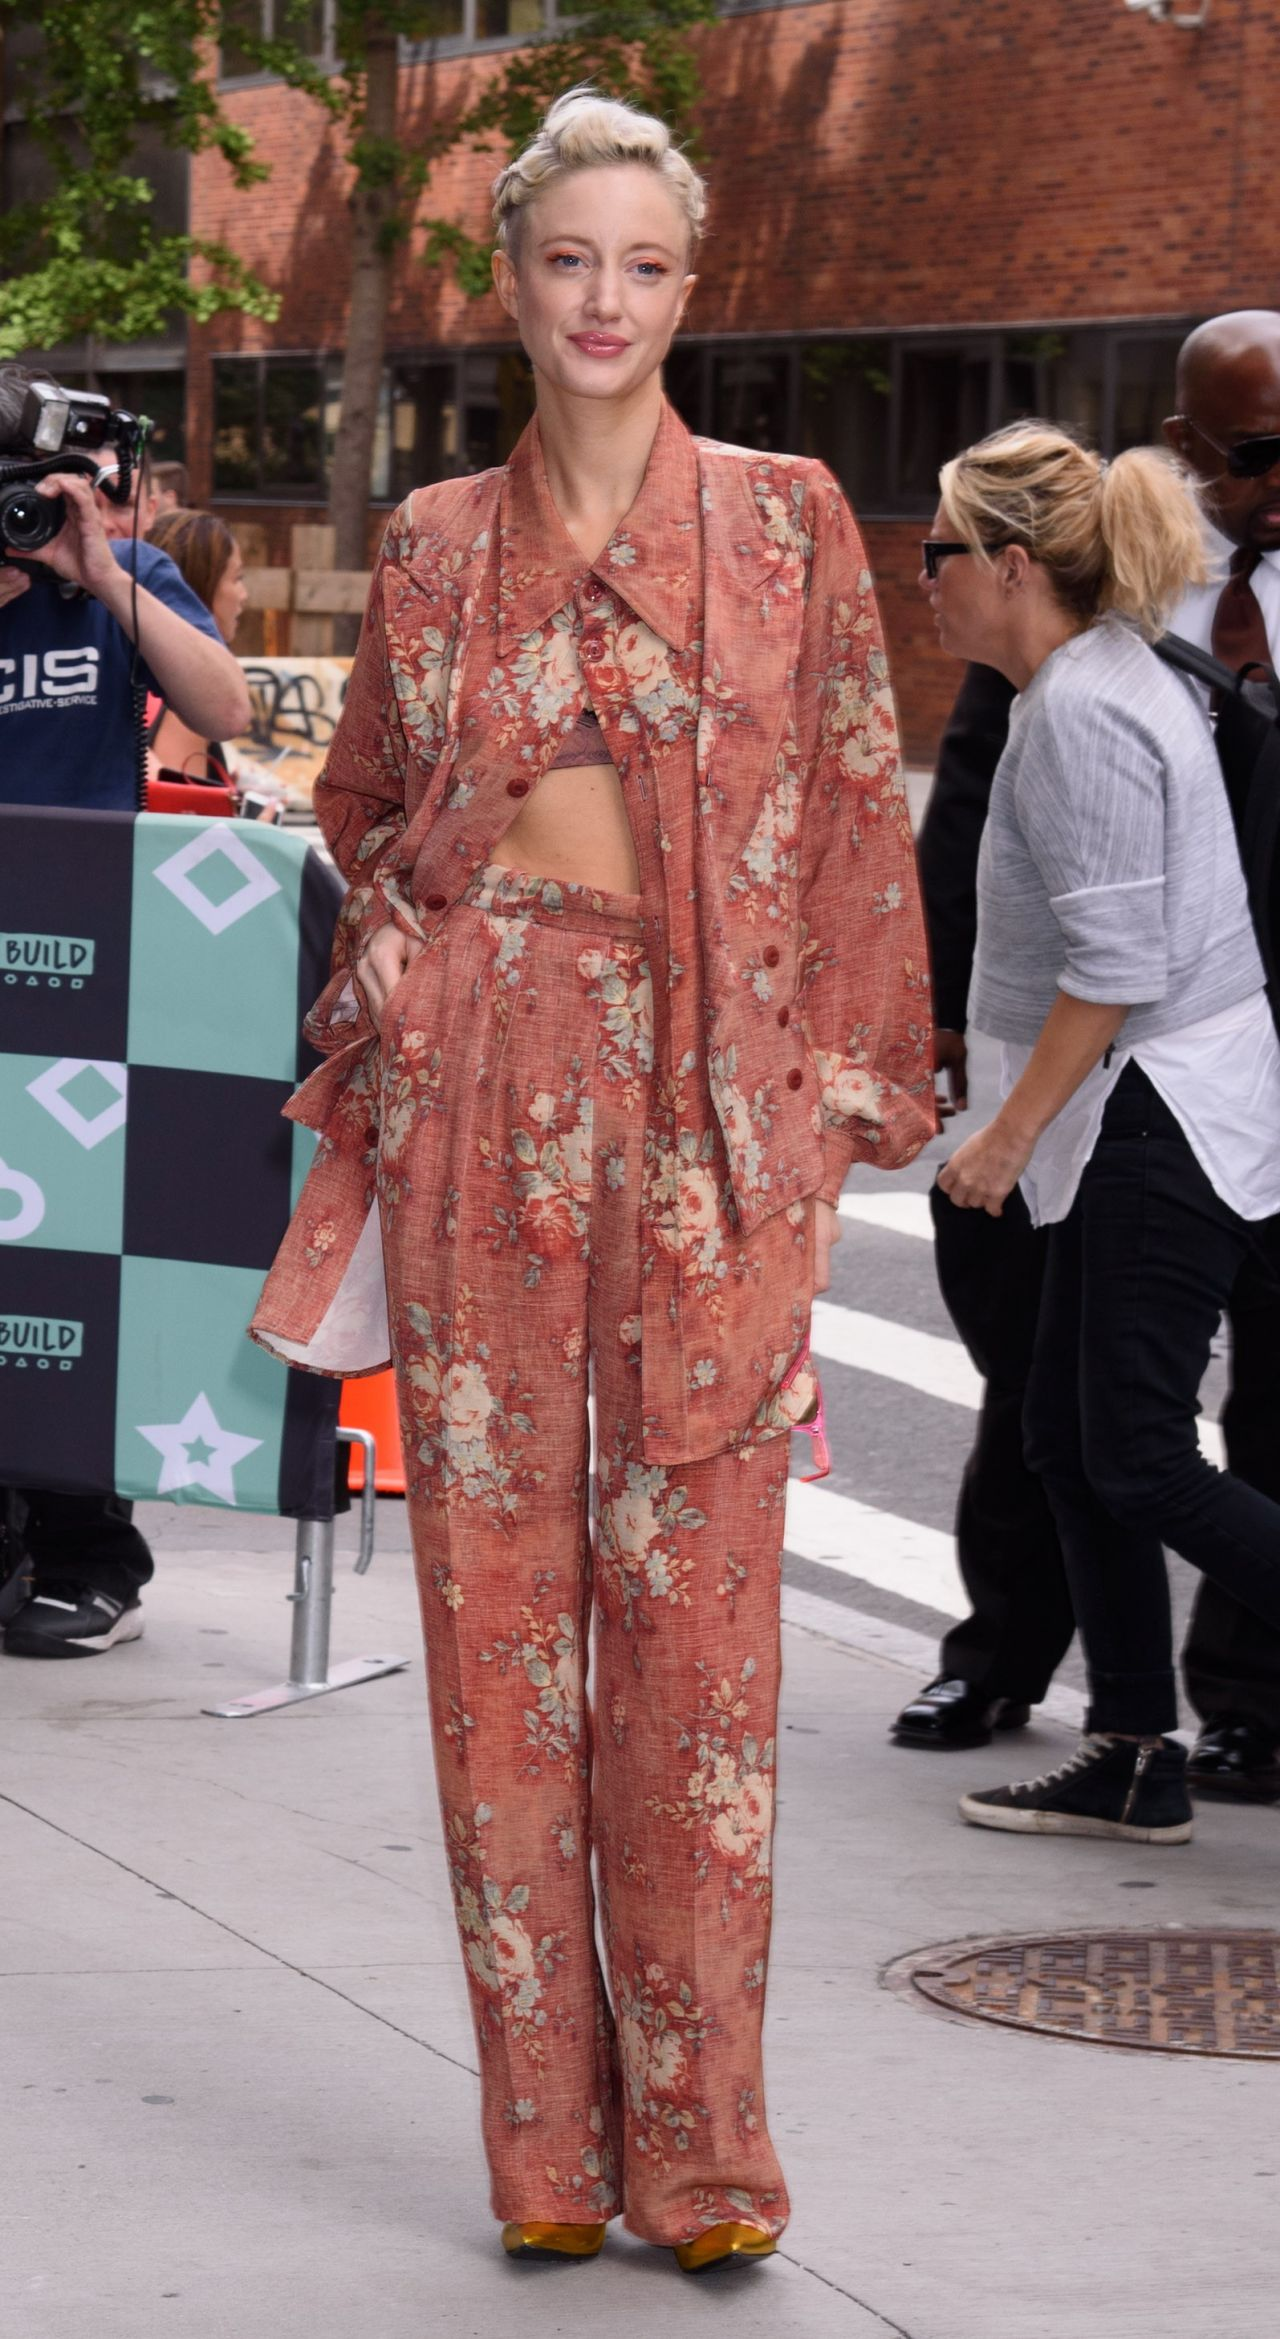 Andrea riseborough at aol build in nyc nudes (69 photos), Ass Celebrity image